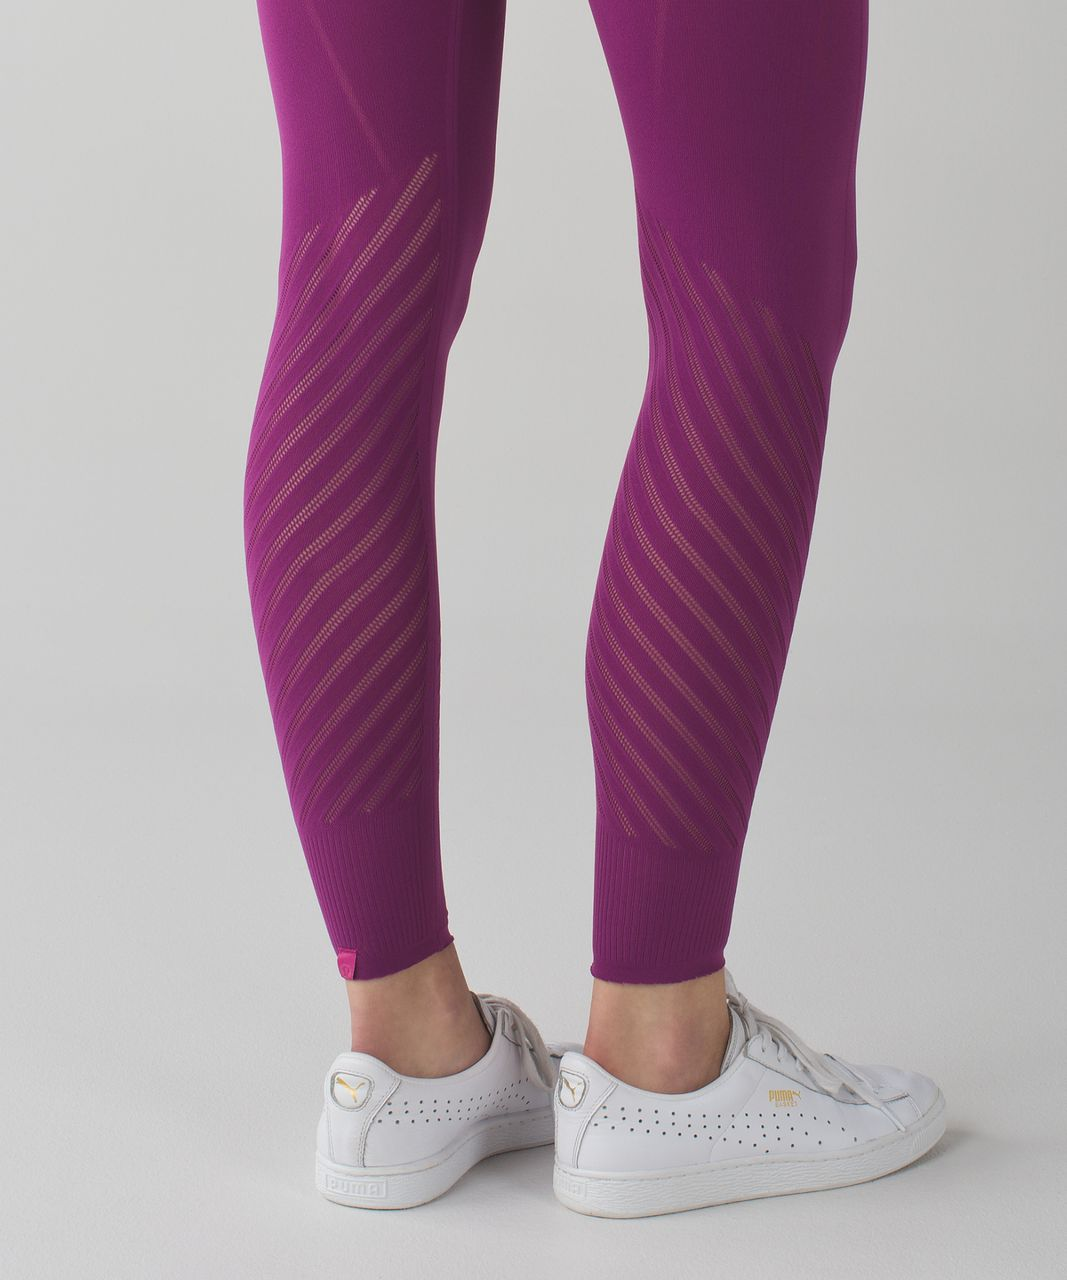 Lululemon Enlighten Tight - Regal Plum